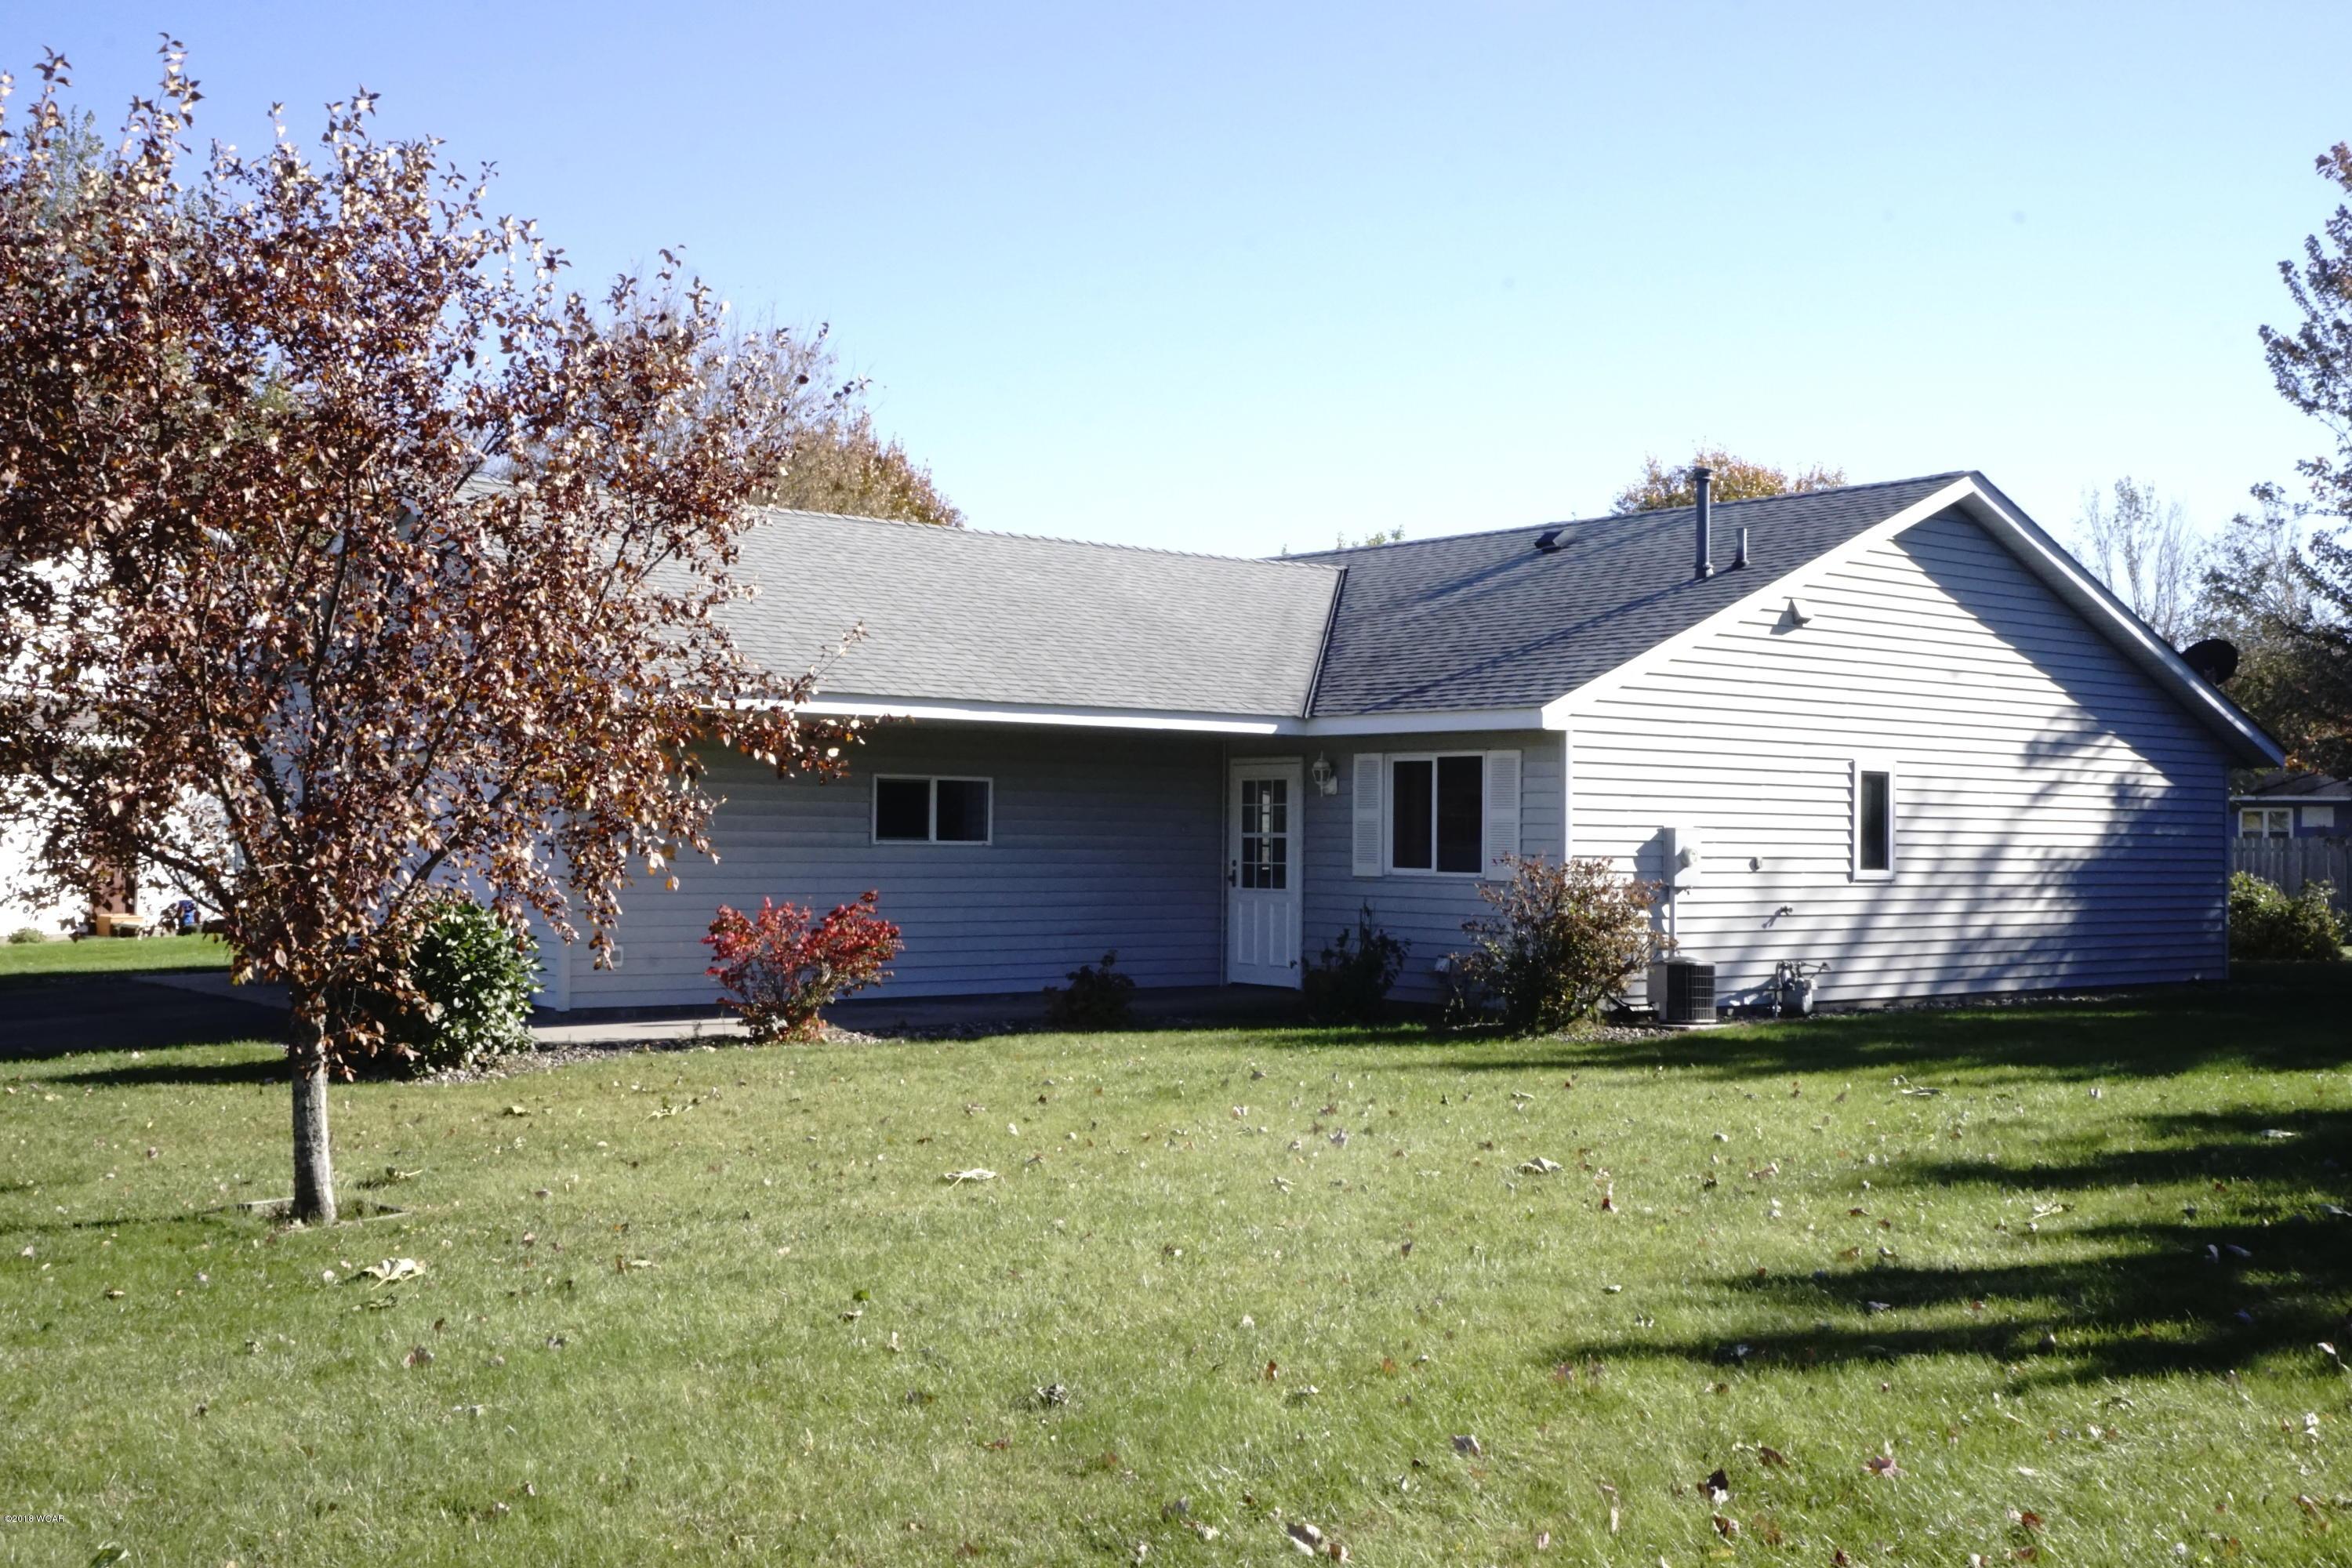 1110 1 1/2 Street,Cold Spring,2 Bedrooms Bedrooms,1 BathroomBathrooms,Single Family,1 1/2 Street,6032539